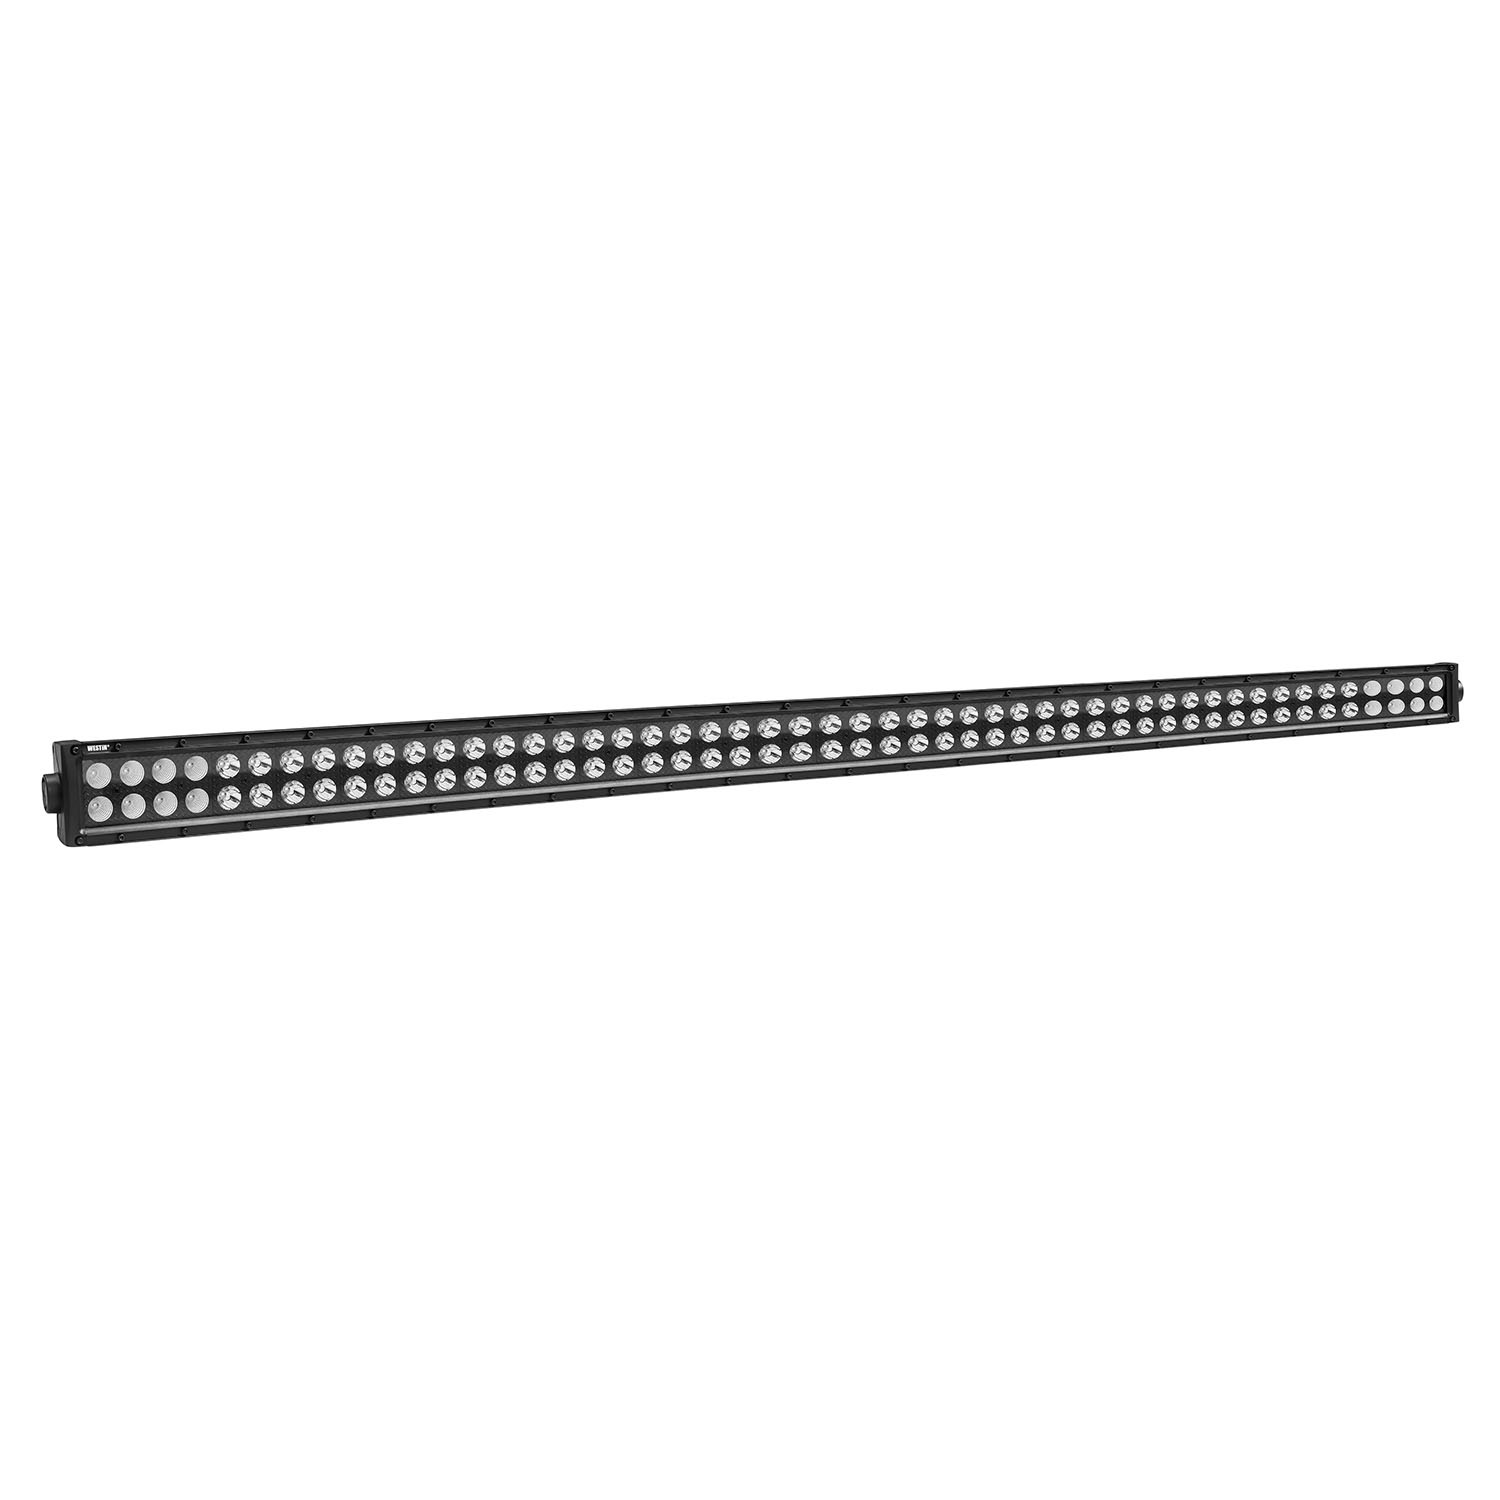 Westin 09-12212-100C B-FORCE LED Light Bar